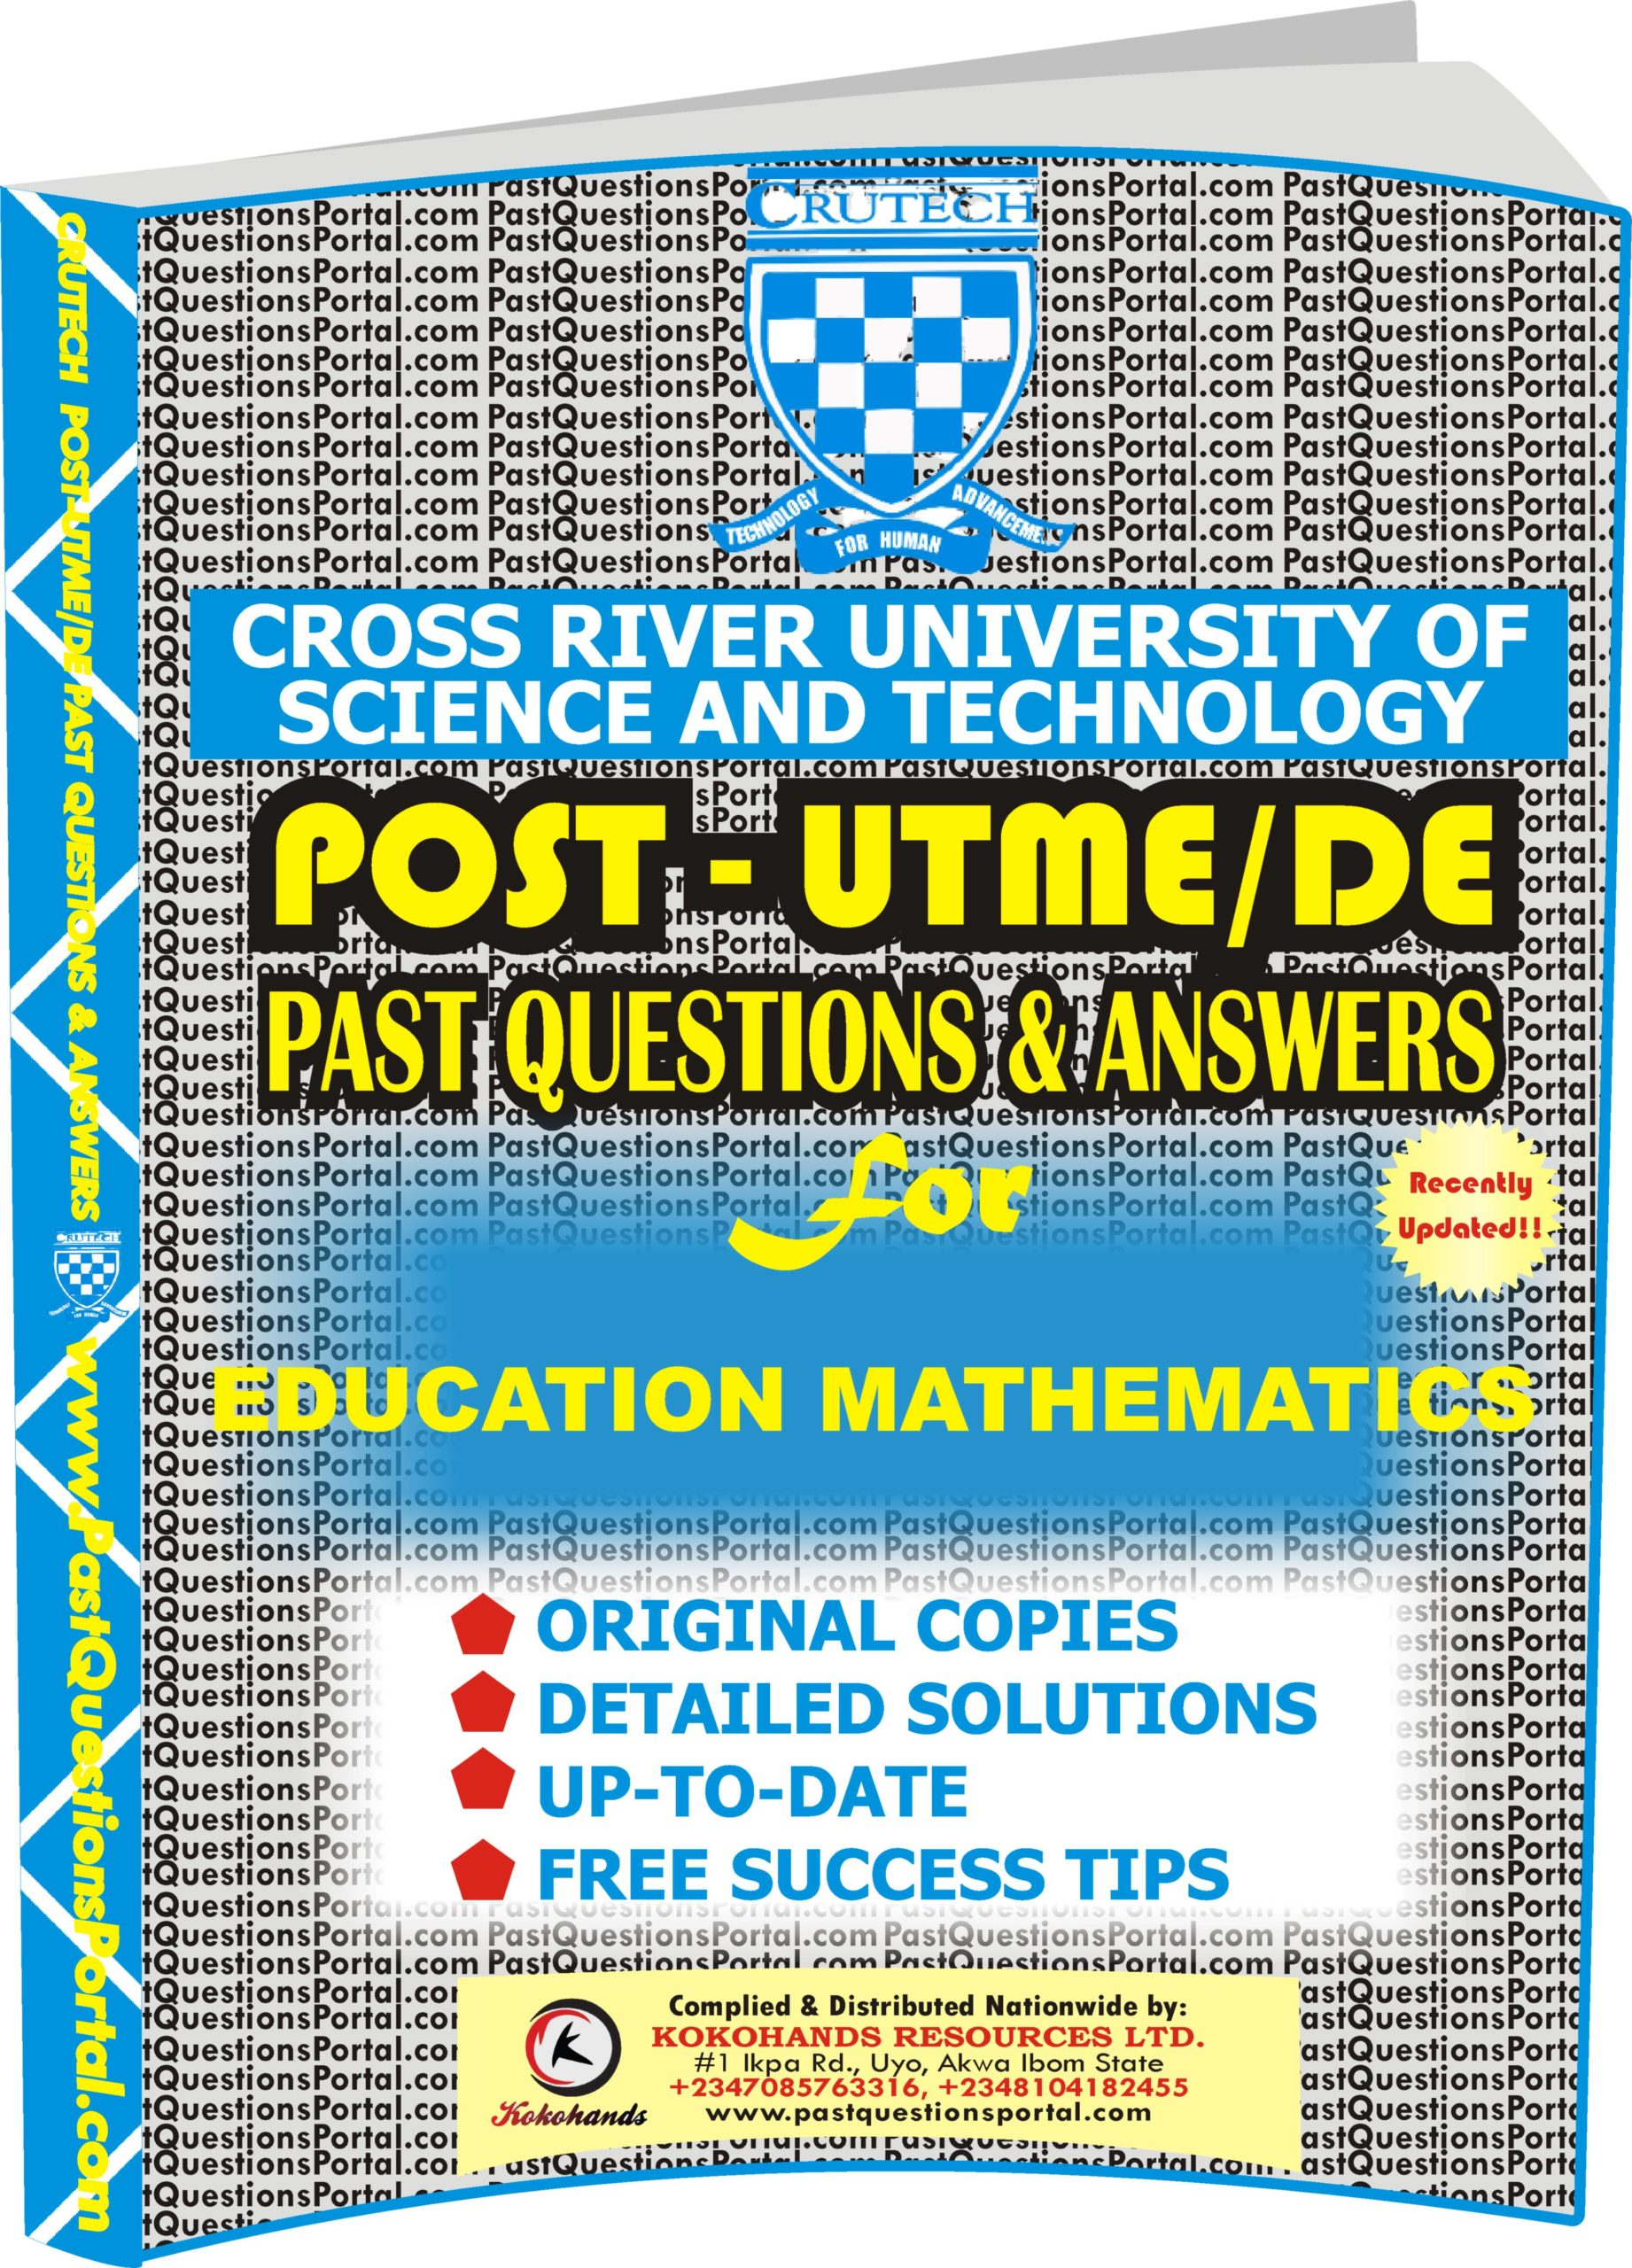 CRUTECH Post UTME Past Questions for EDUCATION MATHEMATICS